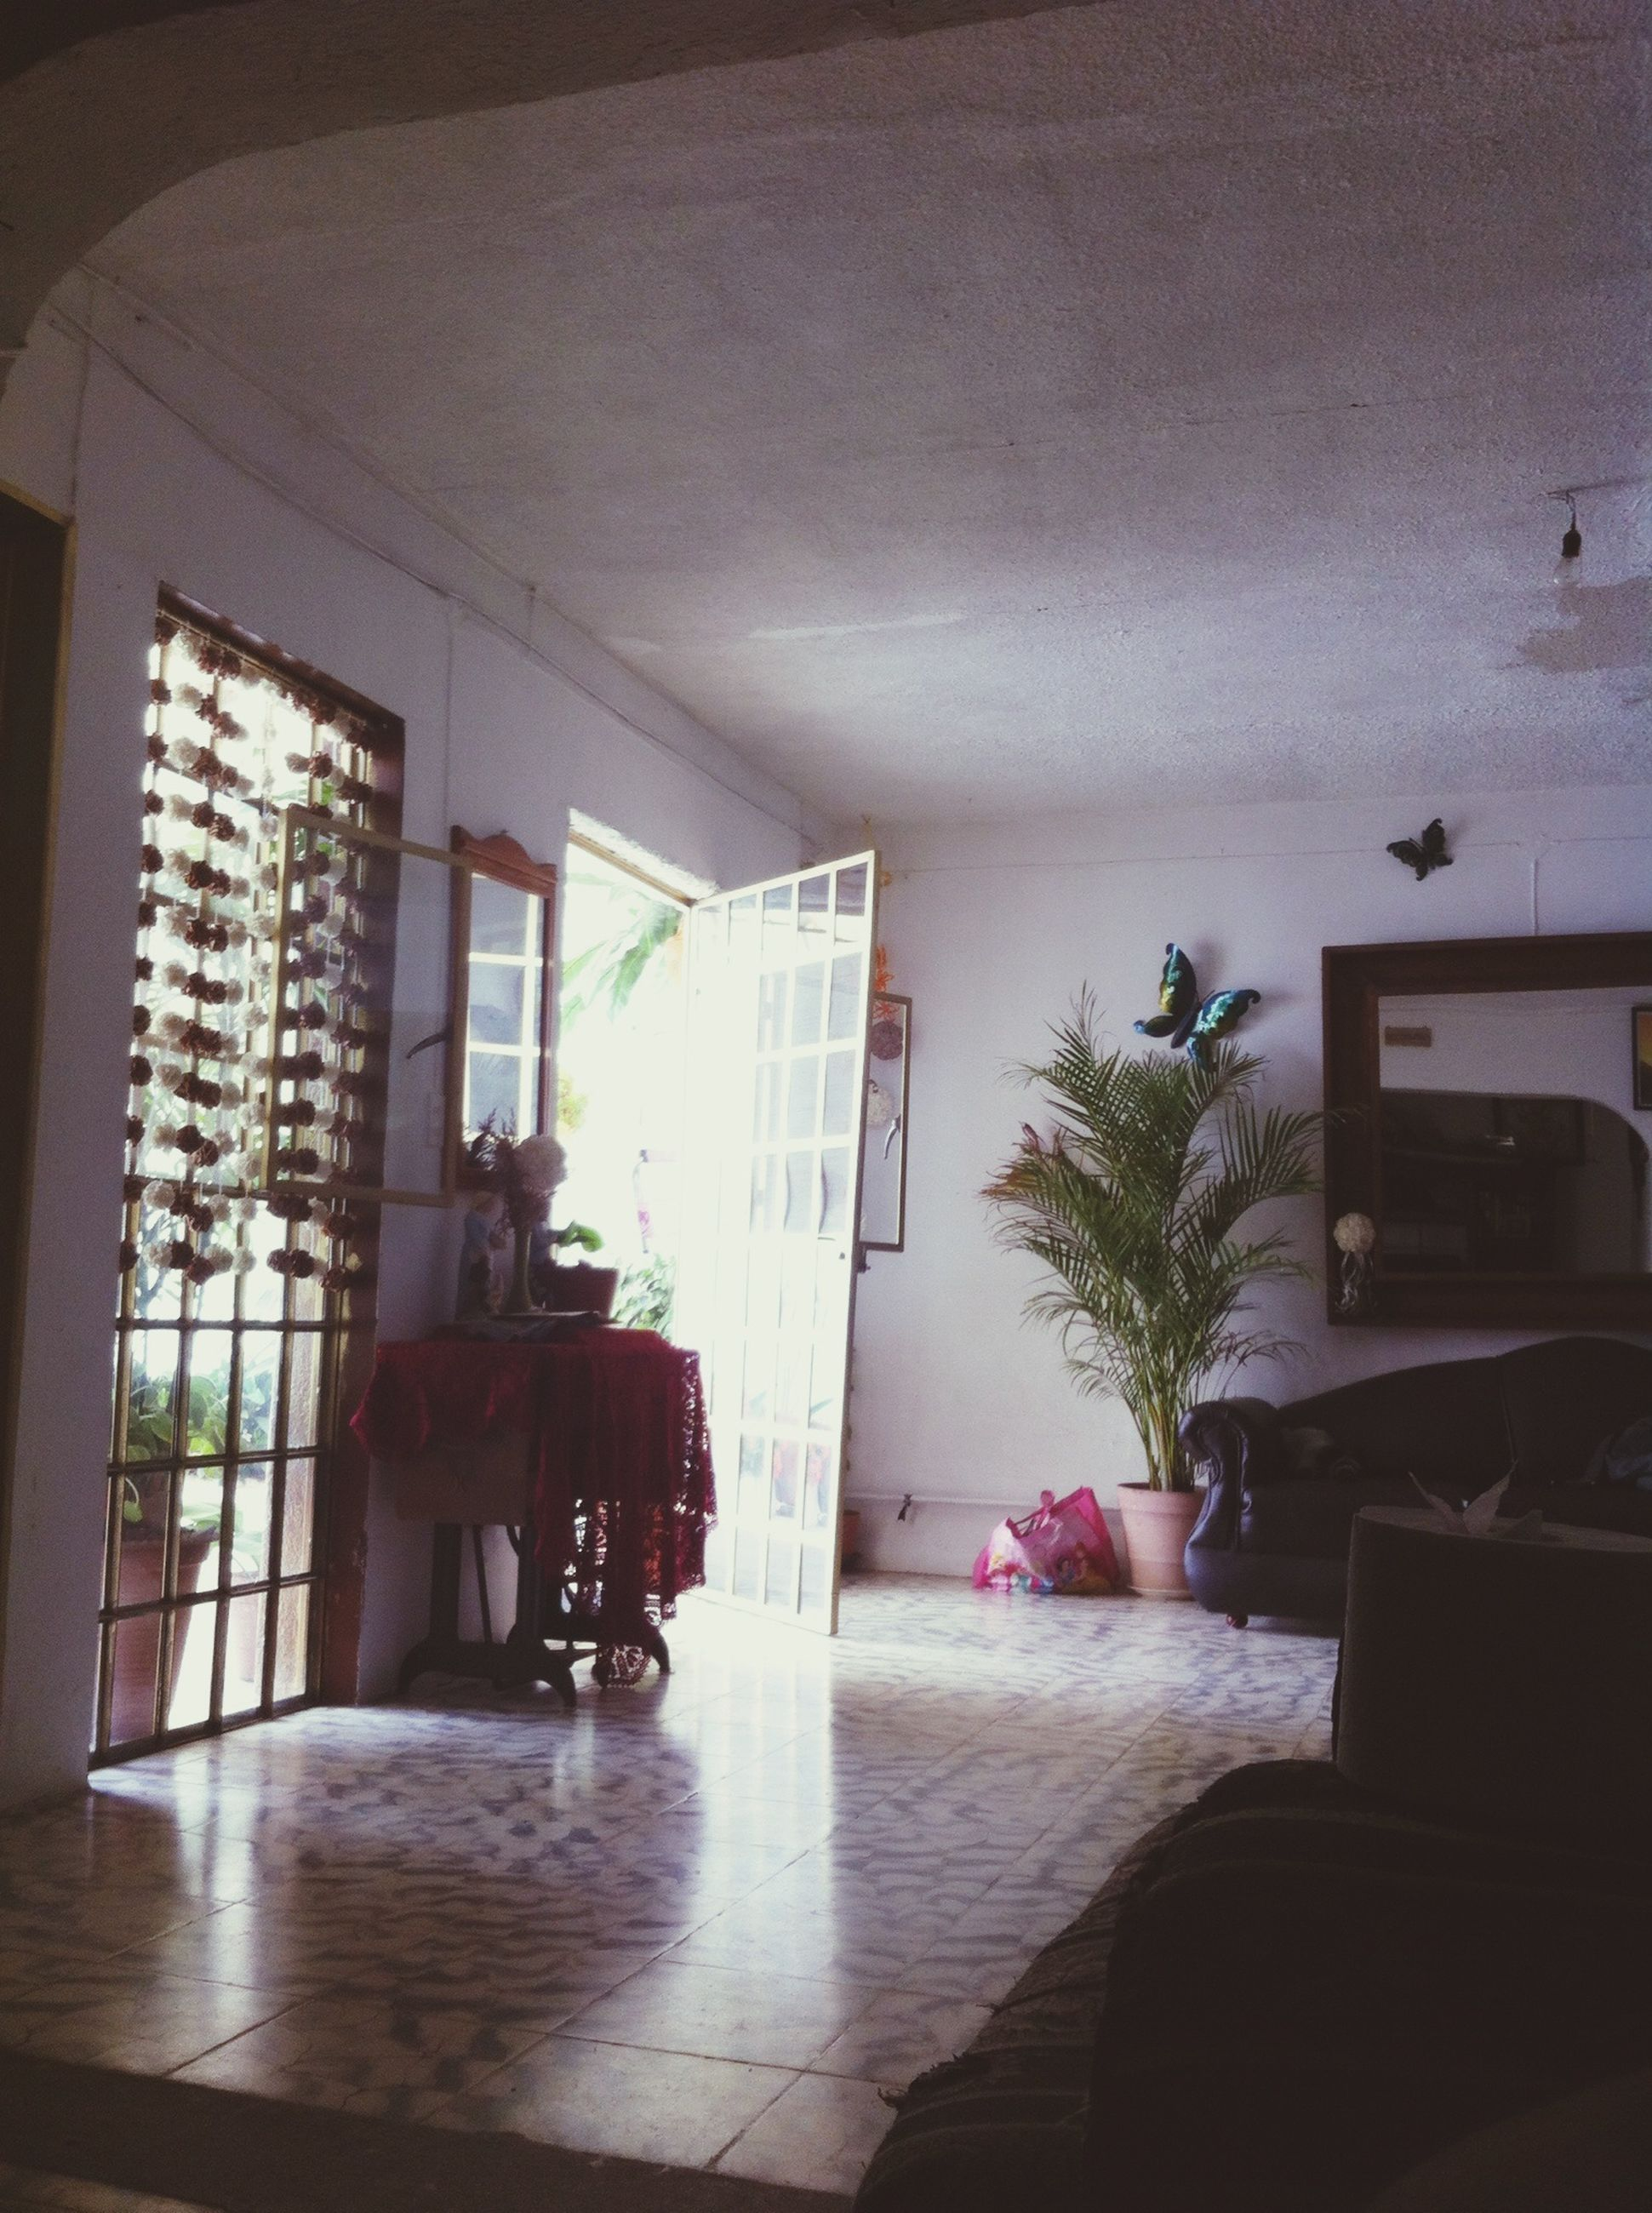 indoors, built structure, architecture, window, glass - material, chair, ceiling, table, potted plant, reflection, transparent, home interior, house, day, sunlight, flooring, absence, plant, no people, modern